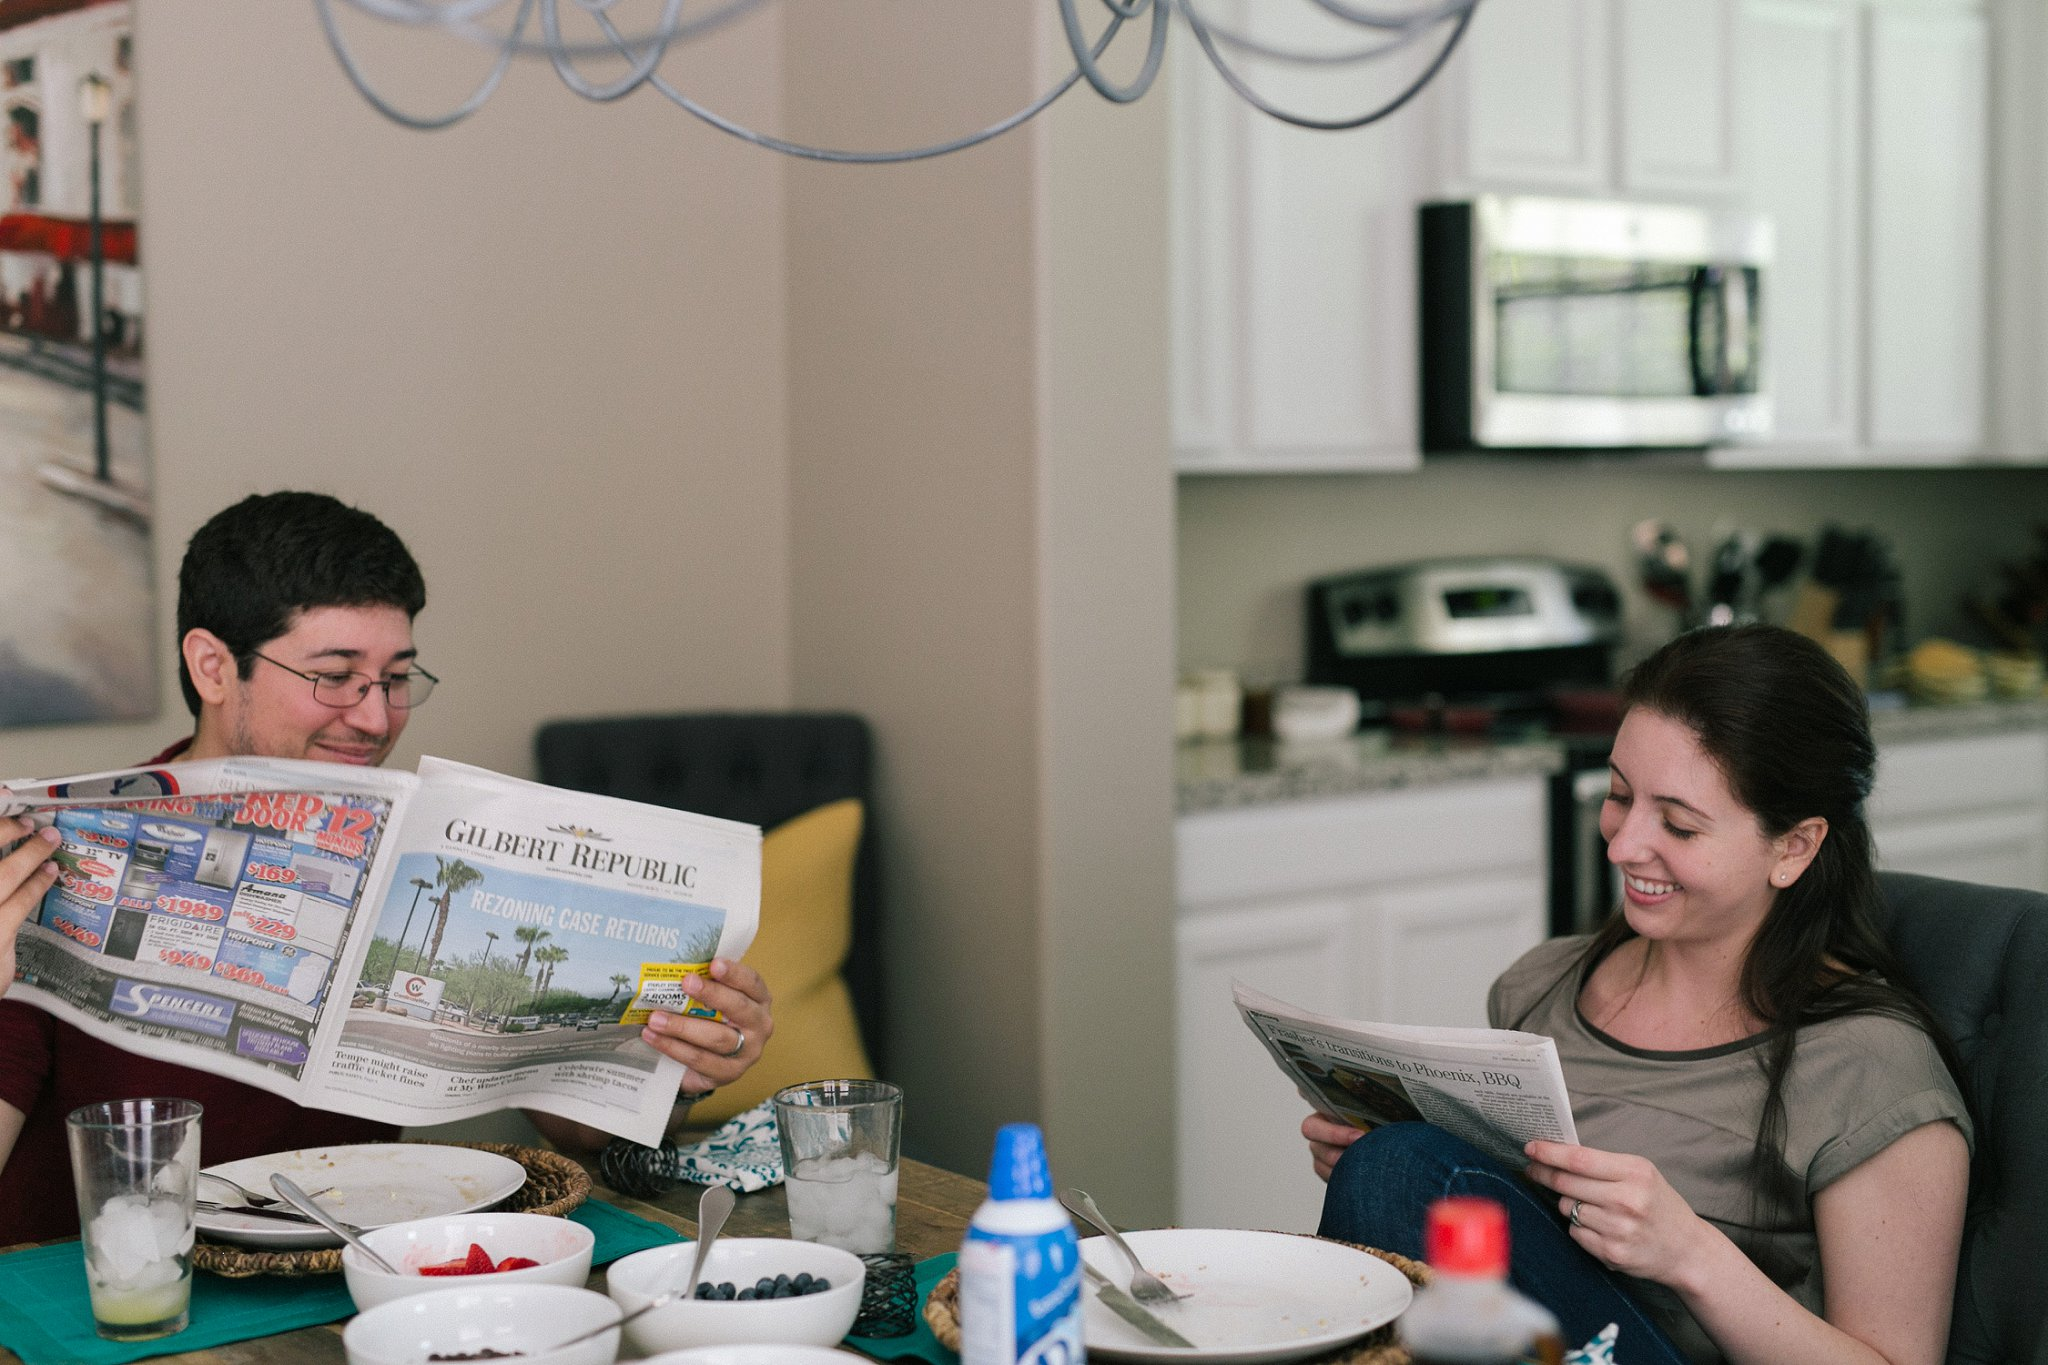 couple sitting at table reading newspaper smiling lazy Sunday engagement session